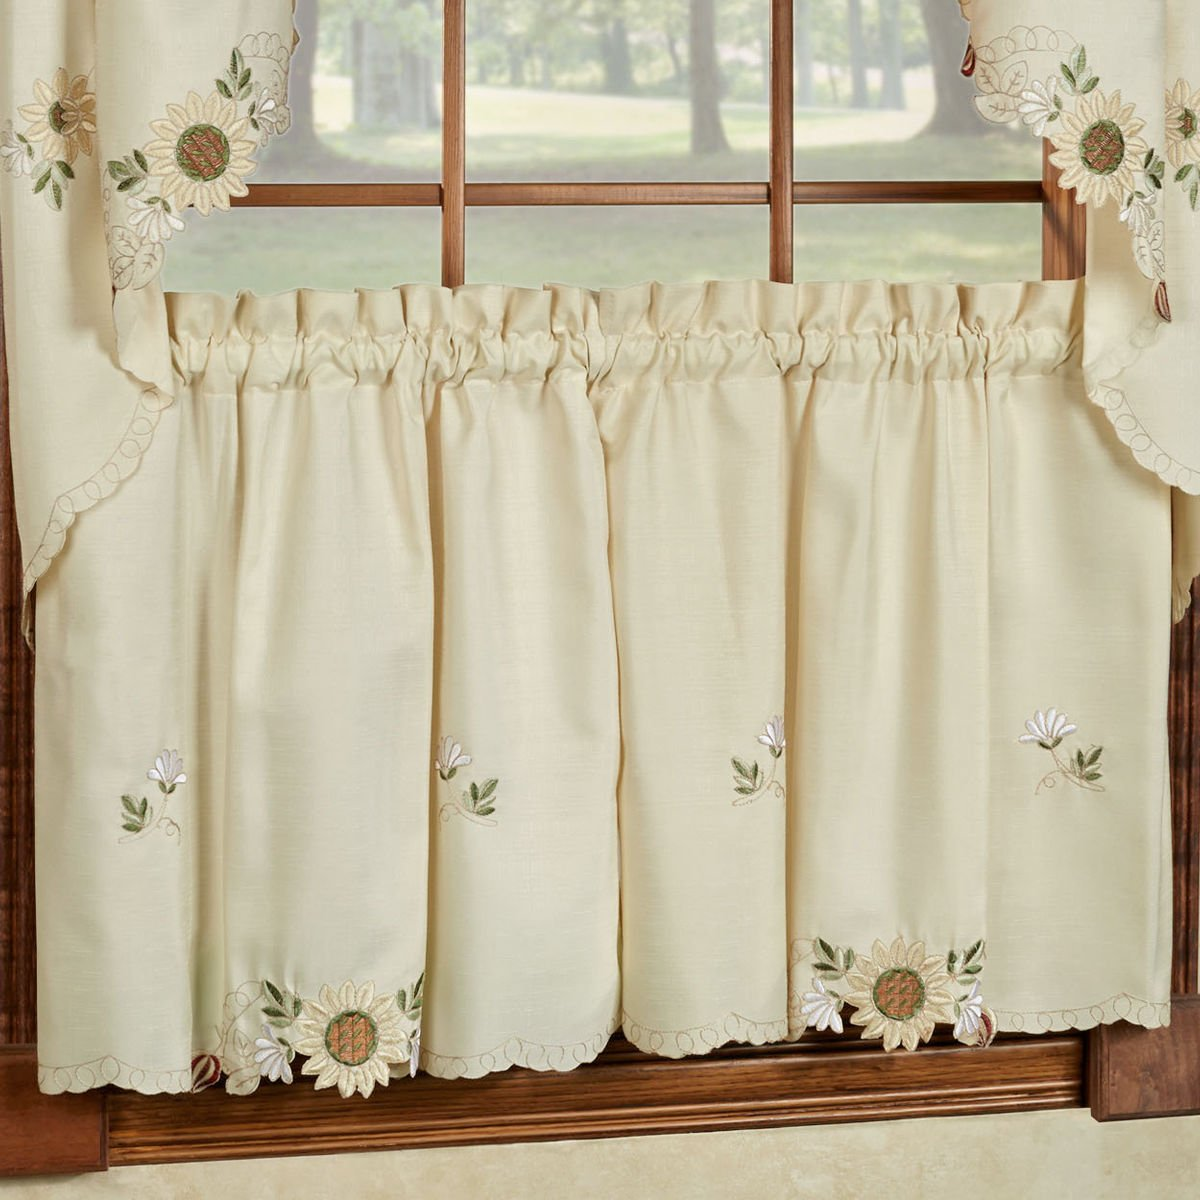 Get quotations · sunflower cream embroidered kitchen curtains tiers valance or swag 24 cafe tier curtains